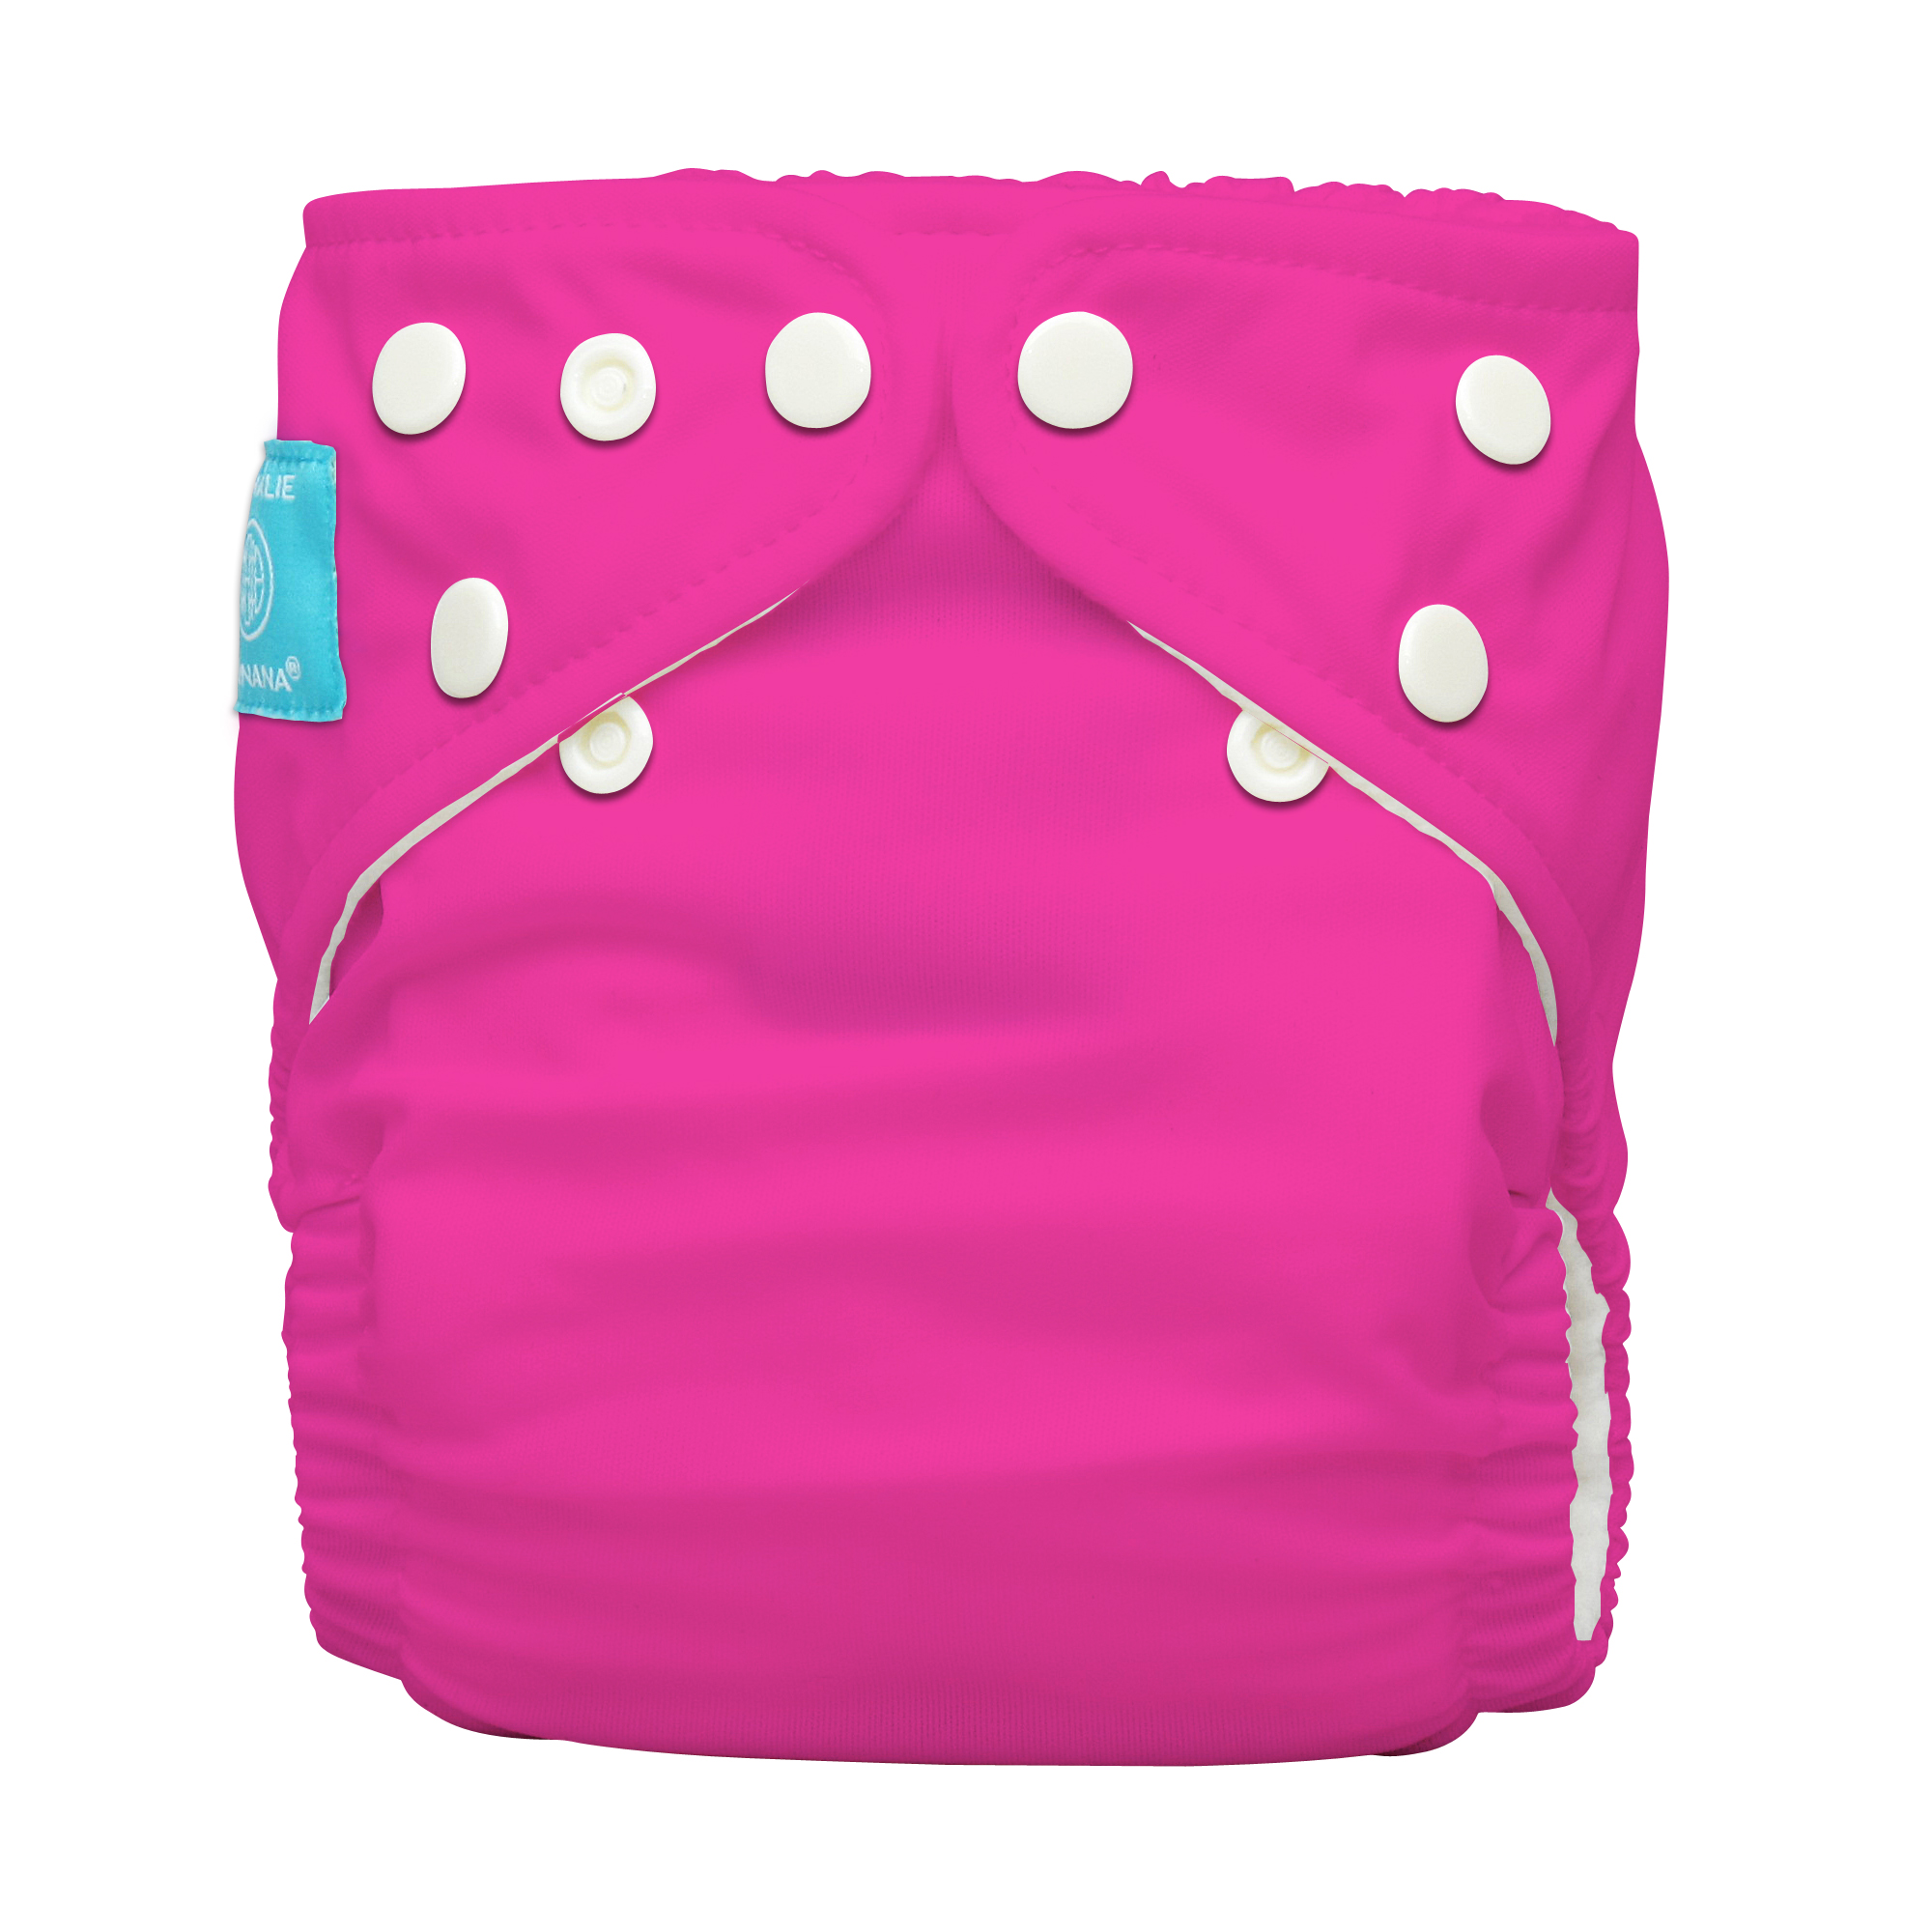 Charlie Banana 2-in-1 Reusable Diapering System, 1 Diaper and 2 Inserts, (One Size), (Choose Your Color)